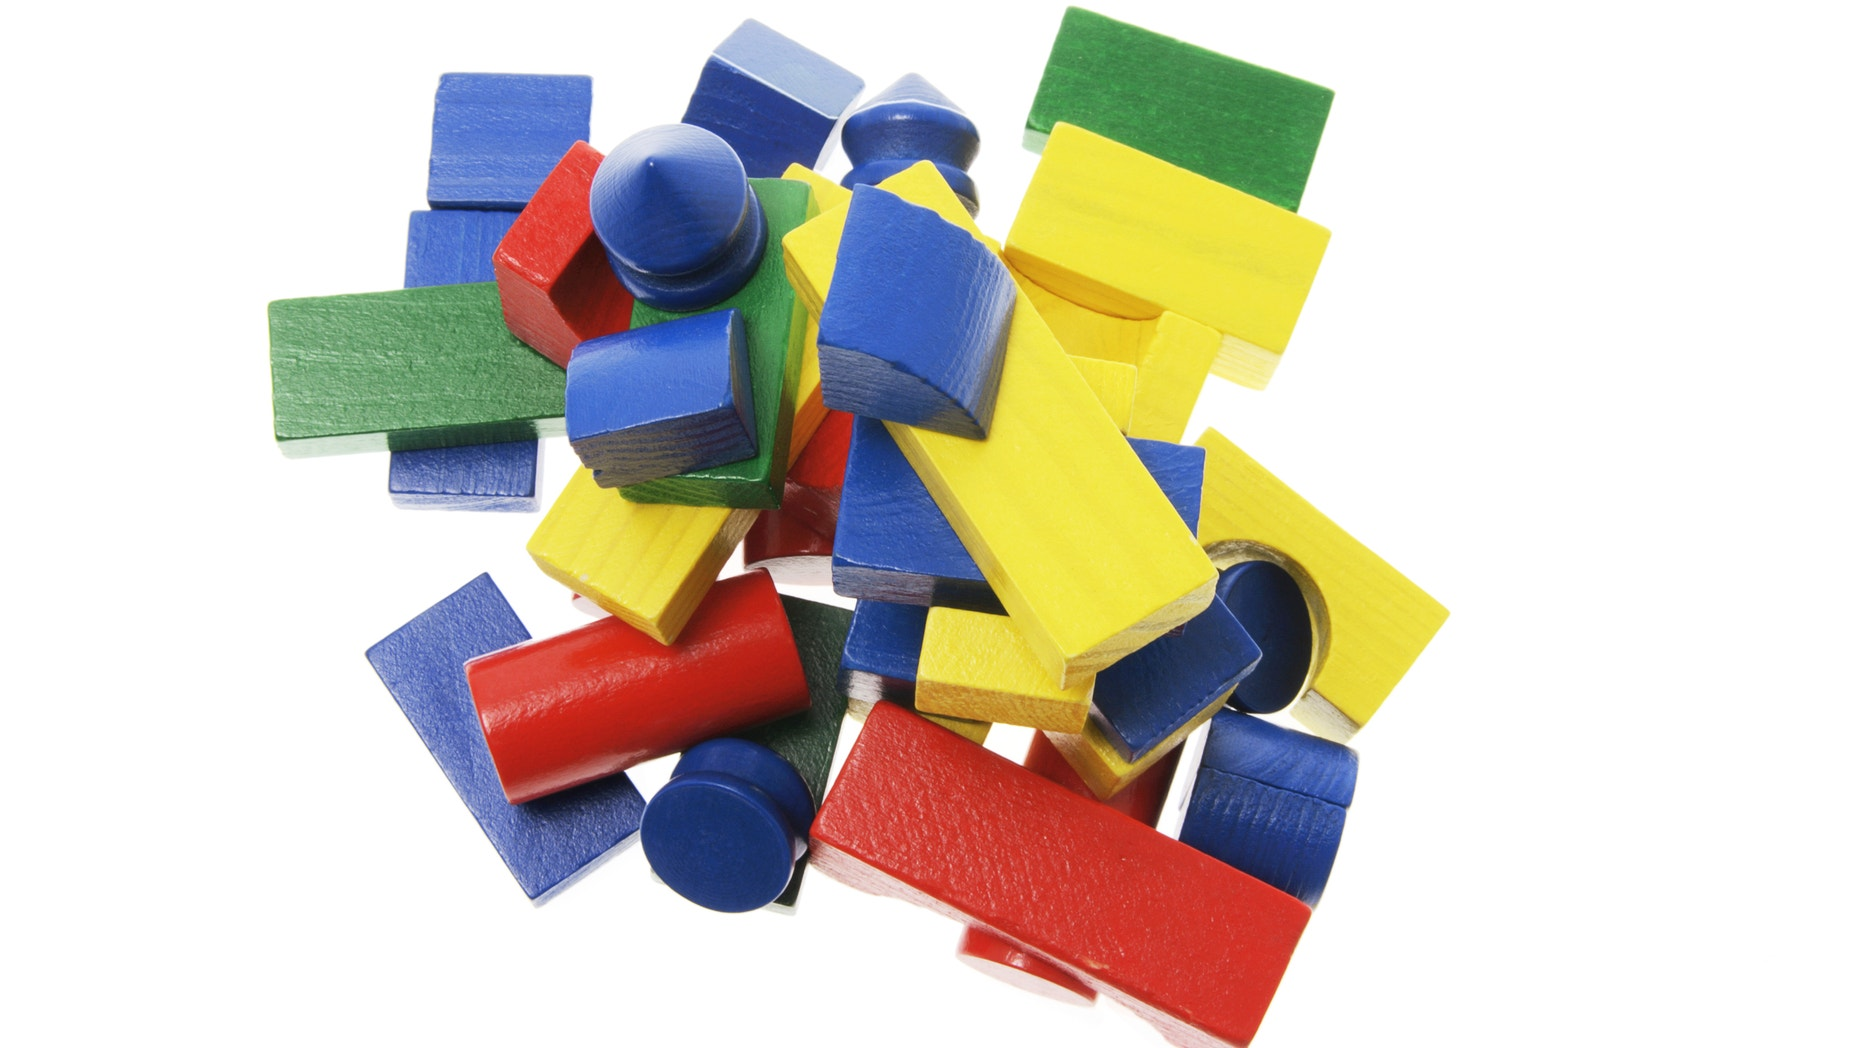 Pile of Wooden Building Blocks on White Background